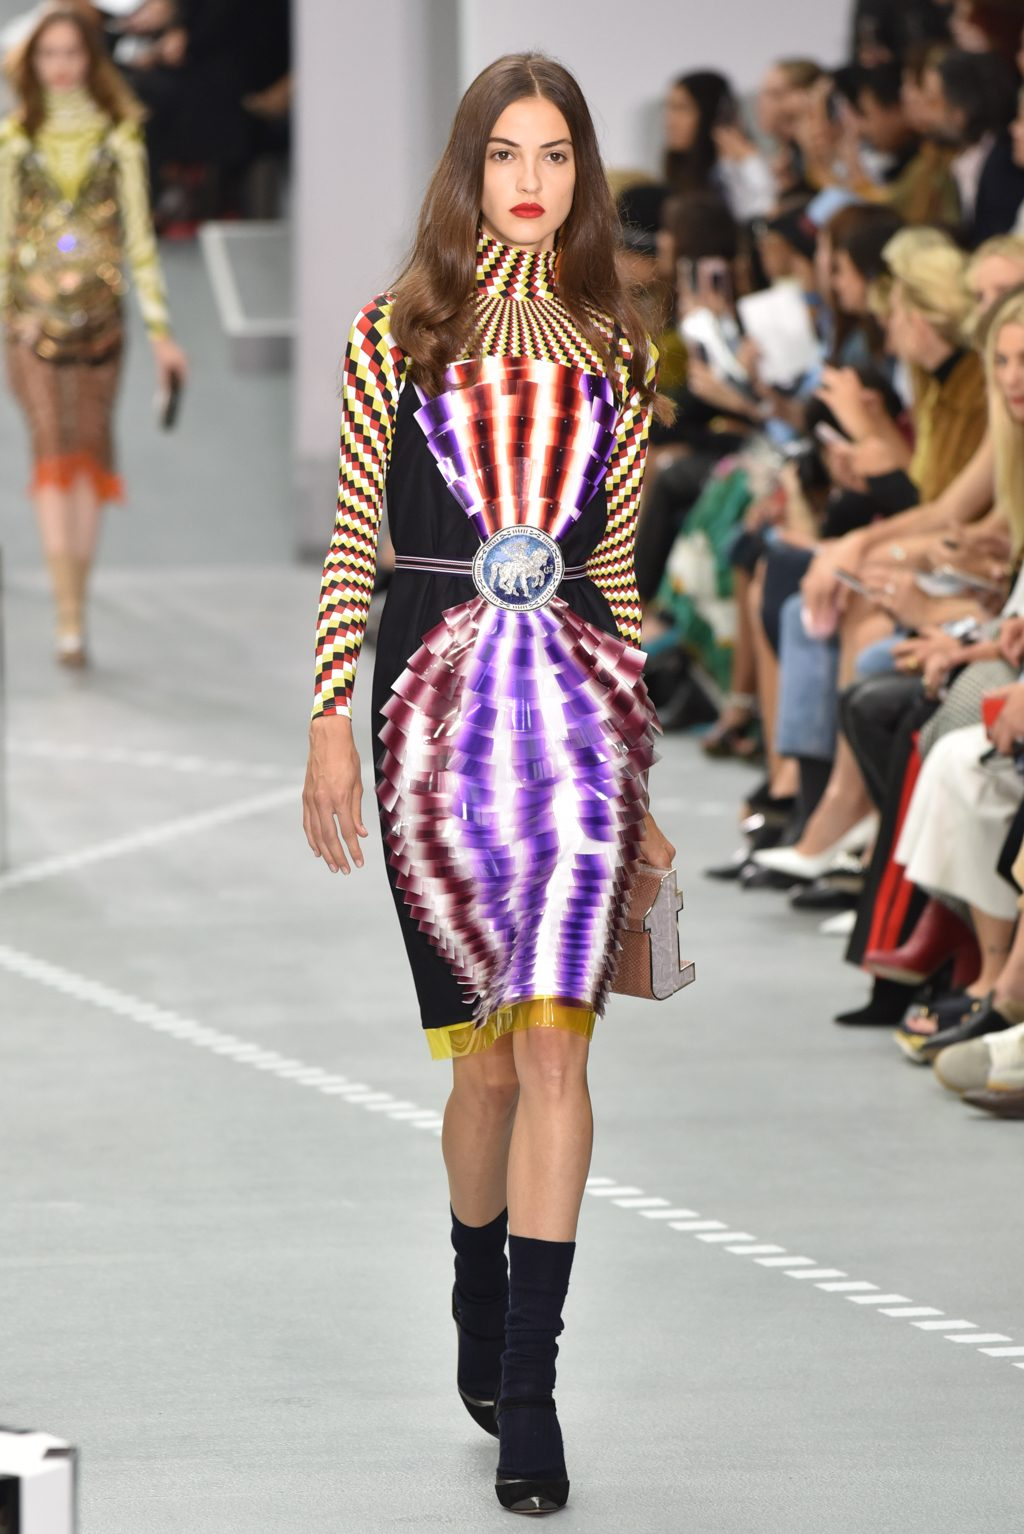 LFW-SS17-Mary-Katrantzou-Krisztian-Pinter-the-upcoming-14-1024x1534